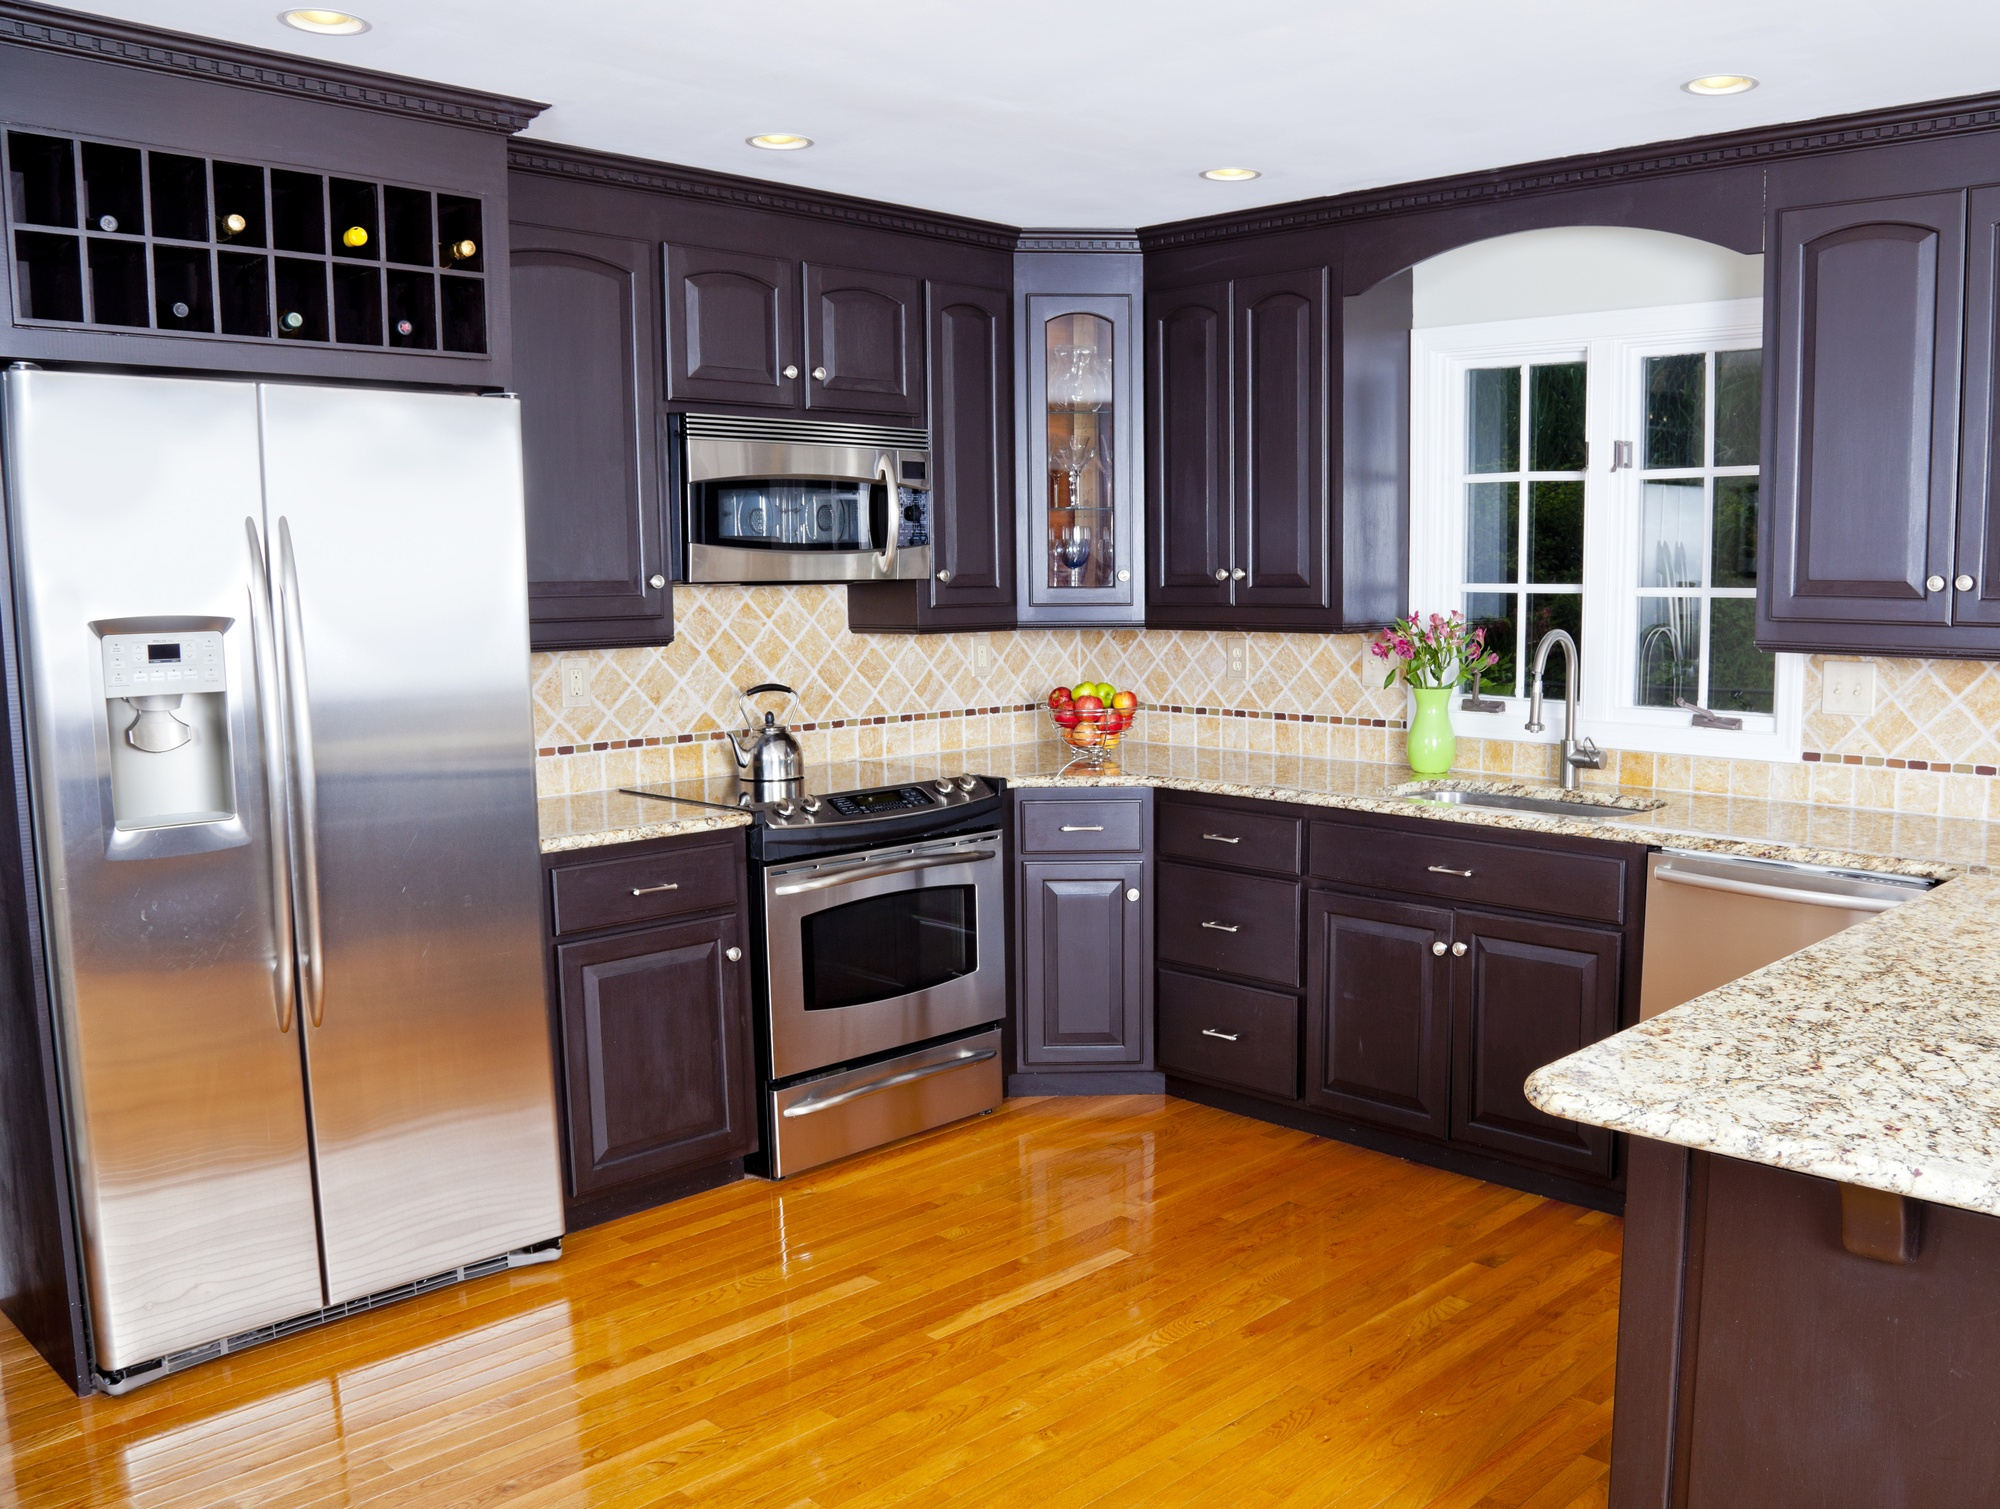 What Color Should I Paint My Kitchen Cabinets? - Dutchpopp ...